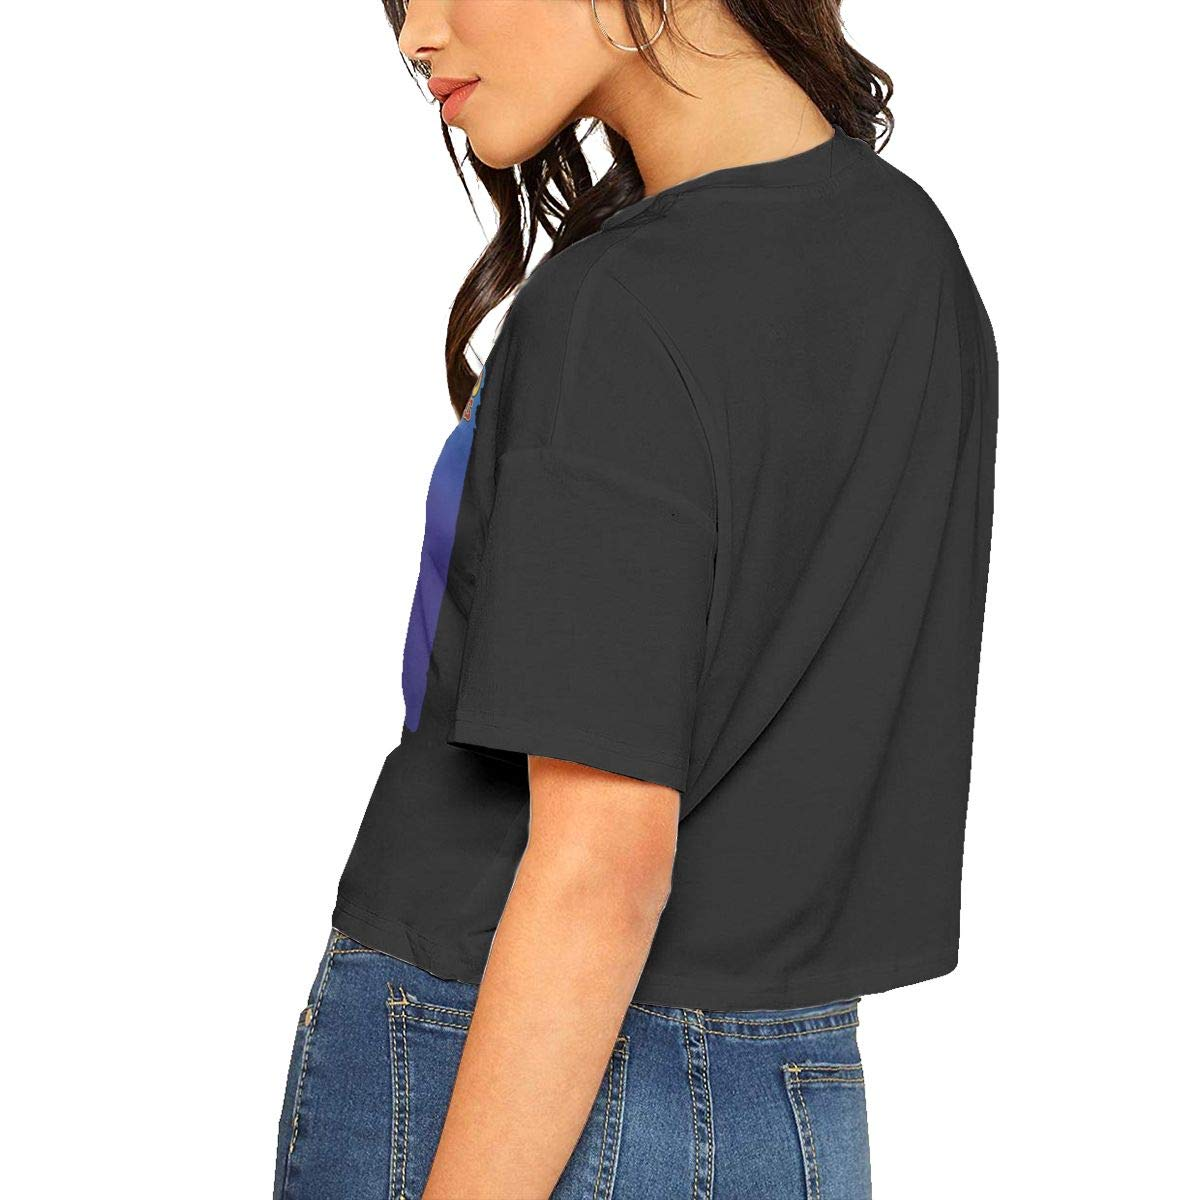 PDXKEWABMM Exposed Navel Female Butthole Surfers Electriclarryland T-Shirt Bare Midriff Crop Top T Shirts Black